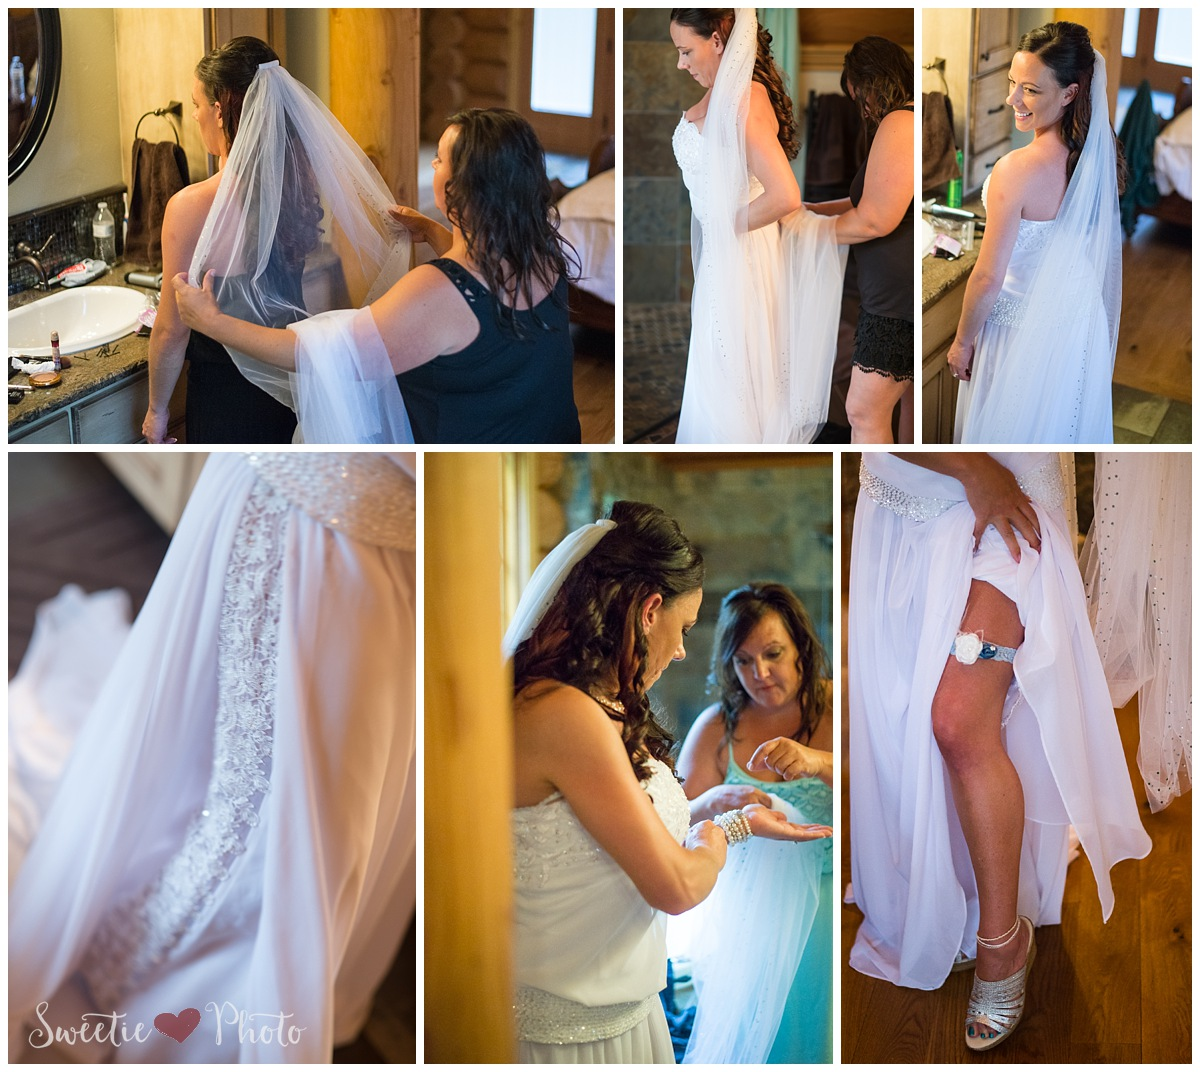 Intimate Breckenridge Wedding|Getting Ready | Sweetie Photo, Colorado Based Wedding Photography